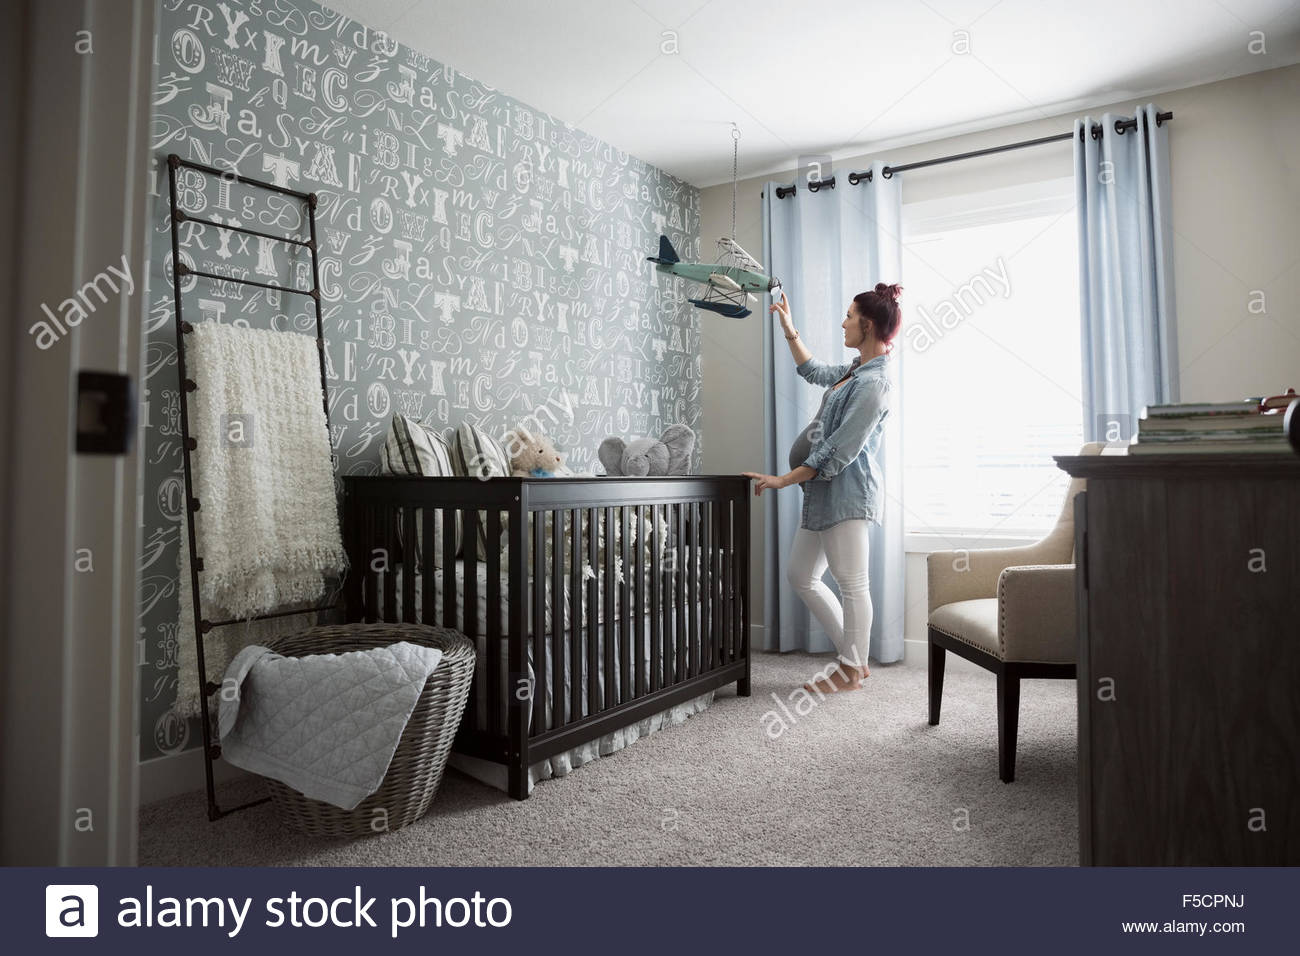 Pregnant woman touching hanging airplane in nursery - Stock Image